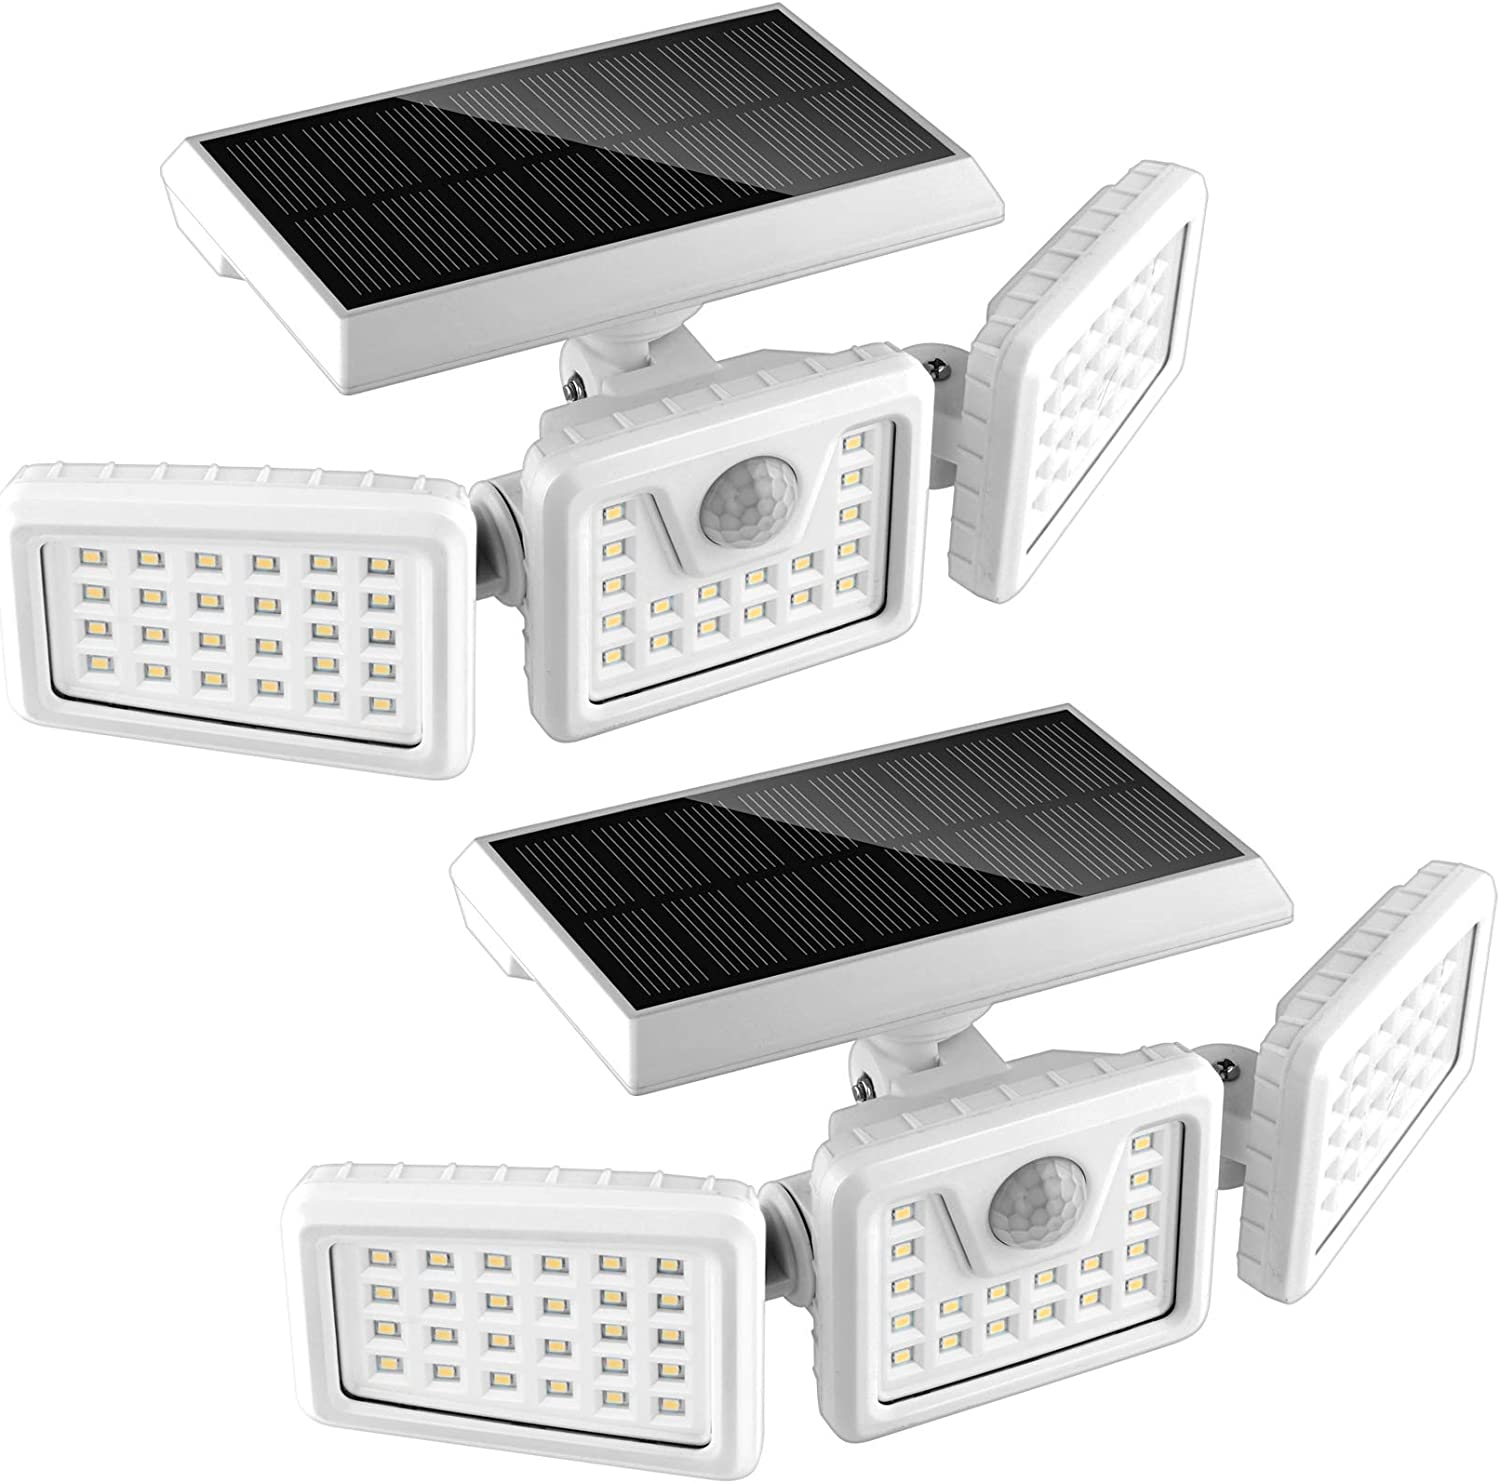 70 LED Solar Motion Lights Outdoor 2 Pack, 3 Heads Solar Security Lights with Motion Sensor IP65 Waterproof, Flood Lights for Wall, Patio, Garden, Porch, Garage White